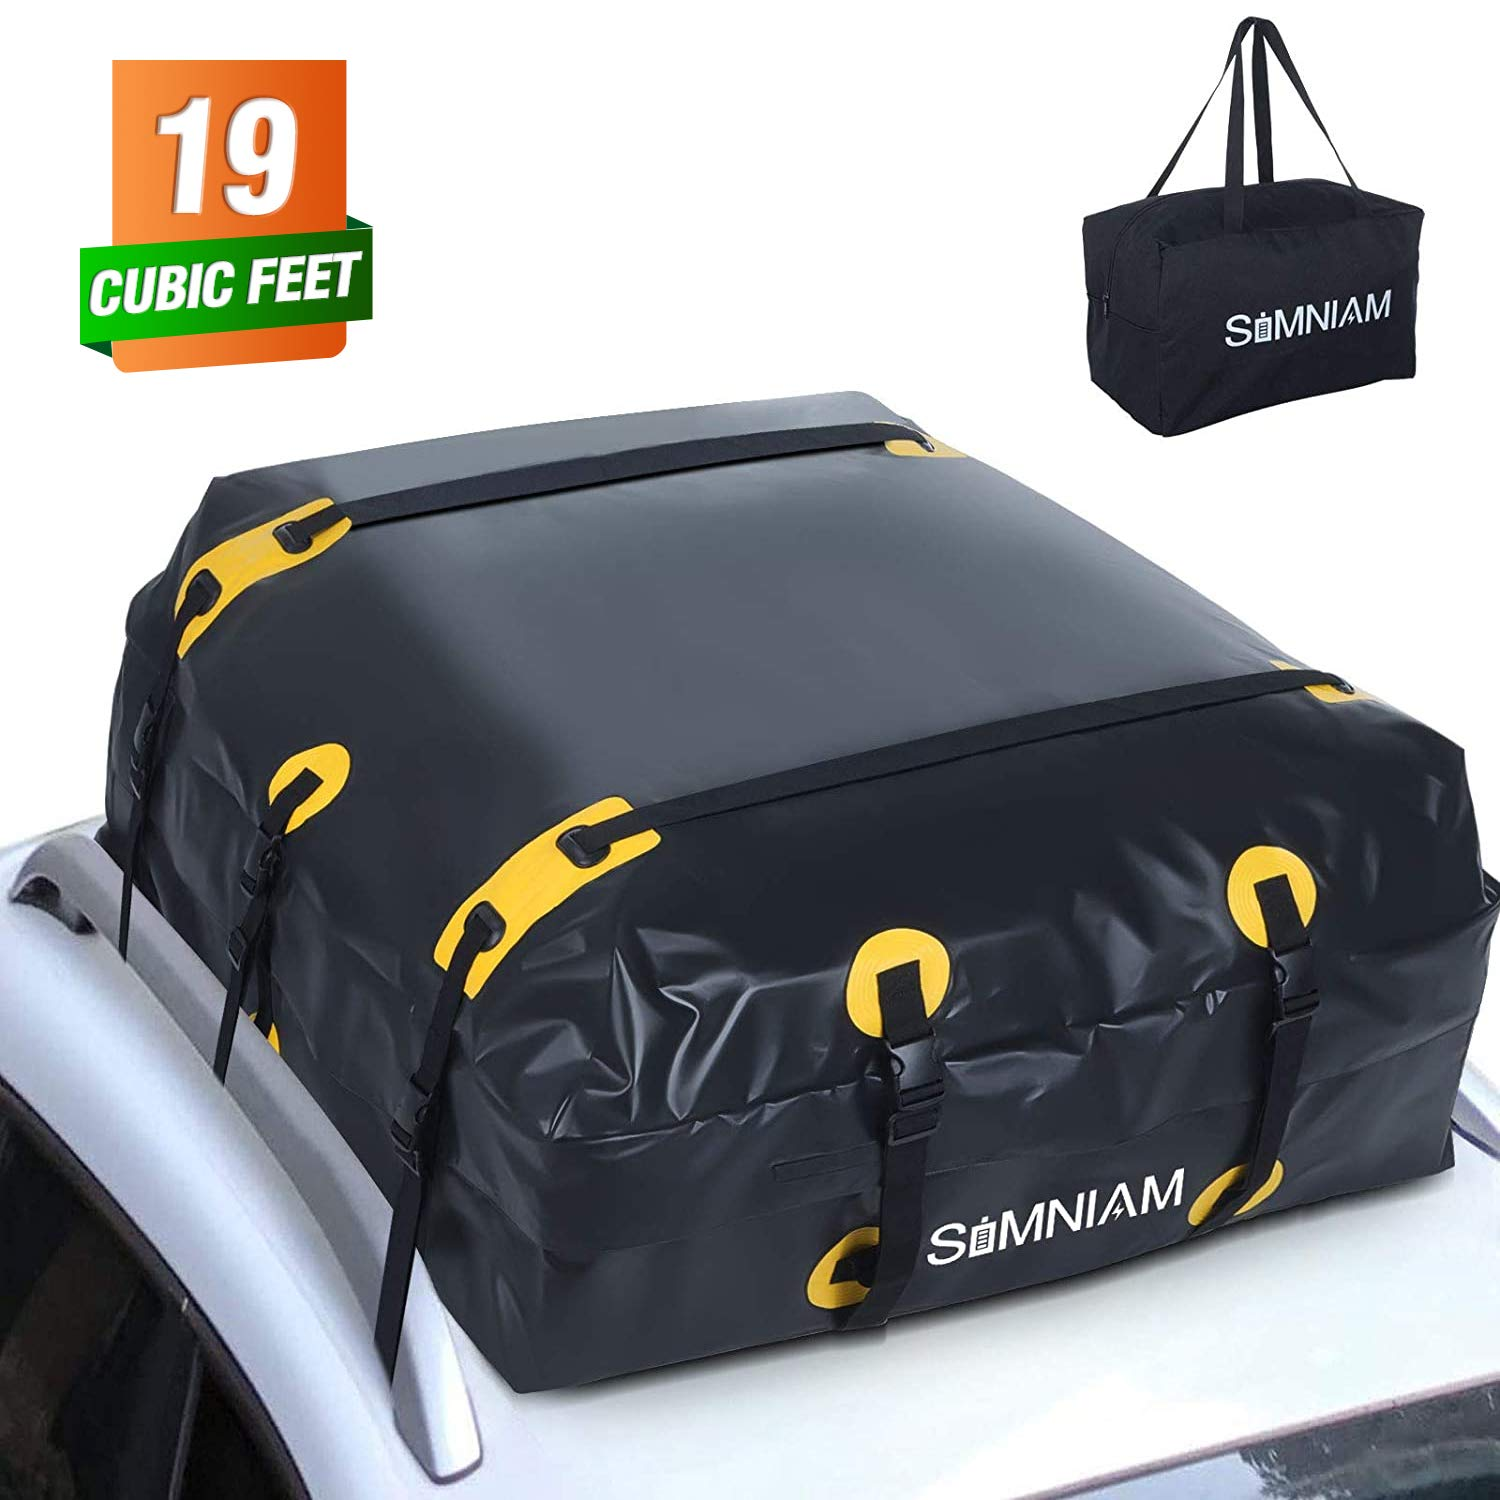 Simniam 19 Cubic Feet Car Roof Bag&Rooftop Cargo Carrier - 700D PVC Double Zippers Car Rooftop Bag with Storage Bag, 10 Reinforced Straps, Fit for Most Vehicles with Rack(No Slip Mat&No Hook)